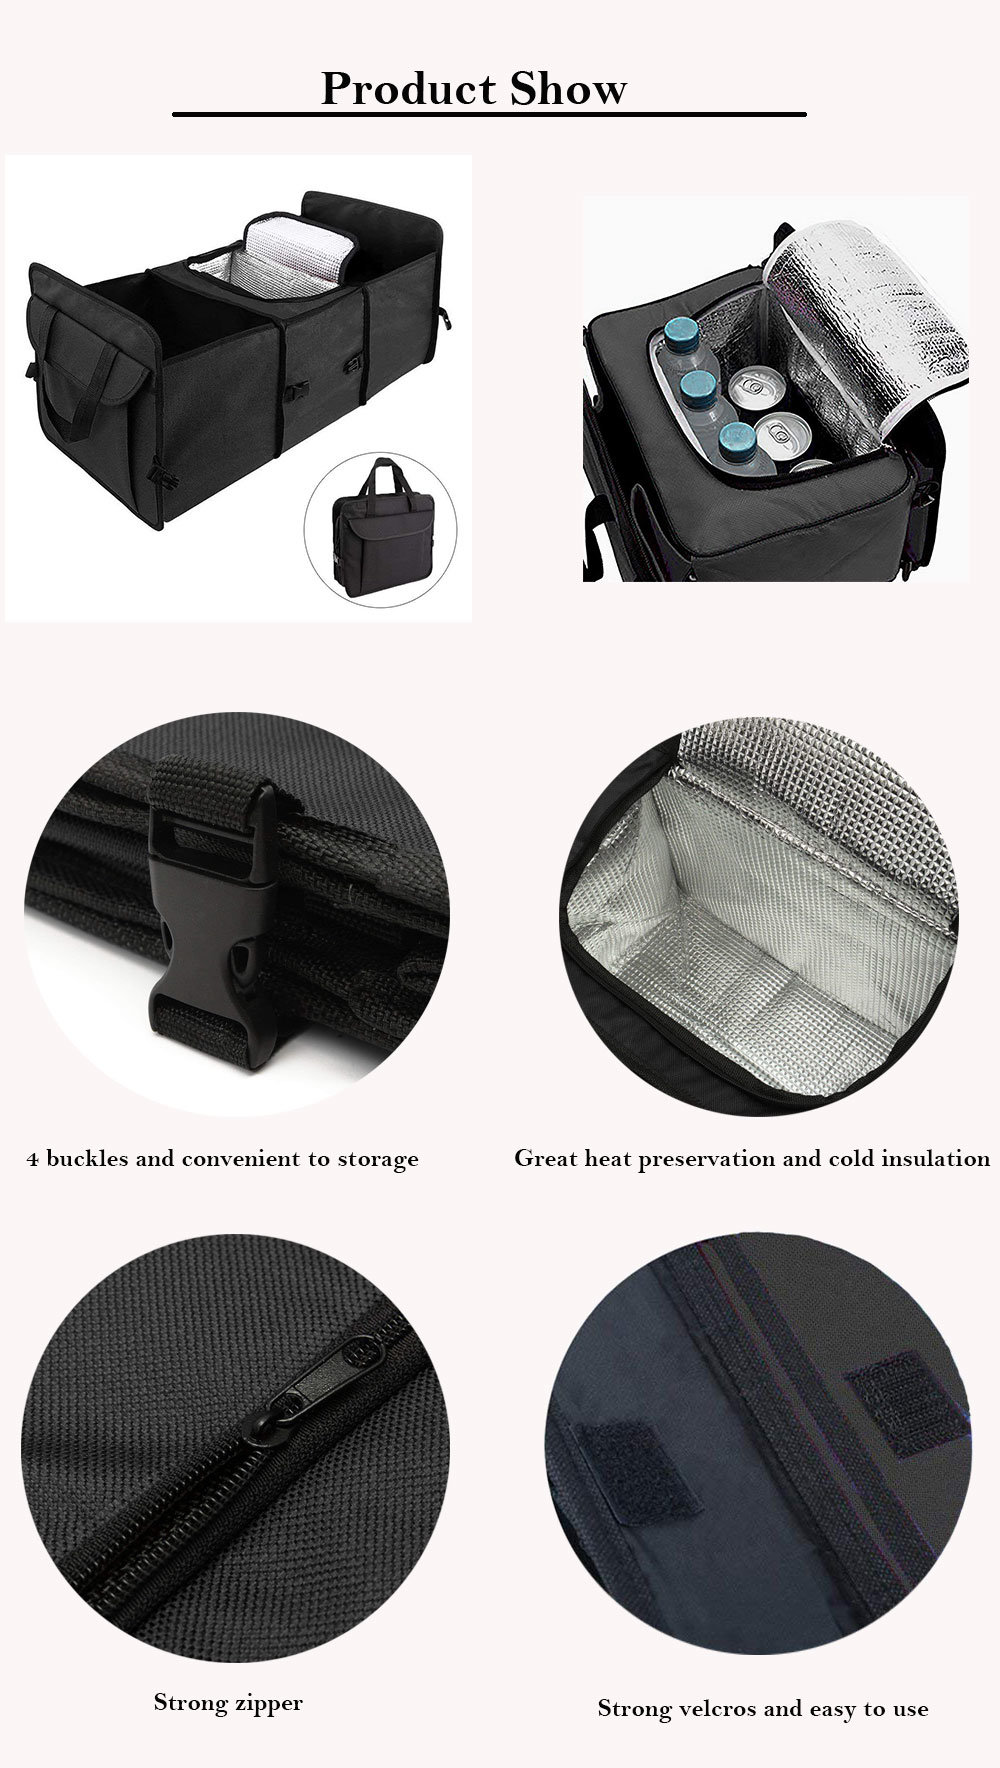 Car Interior Accessory Trunk Organizer With Cooler China Foldable Bag J And K Auto Limited Was Found In 2009 Ningboaiming To Provide Medium Small Clients More Efficient Quality Services